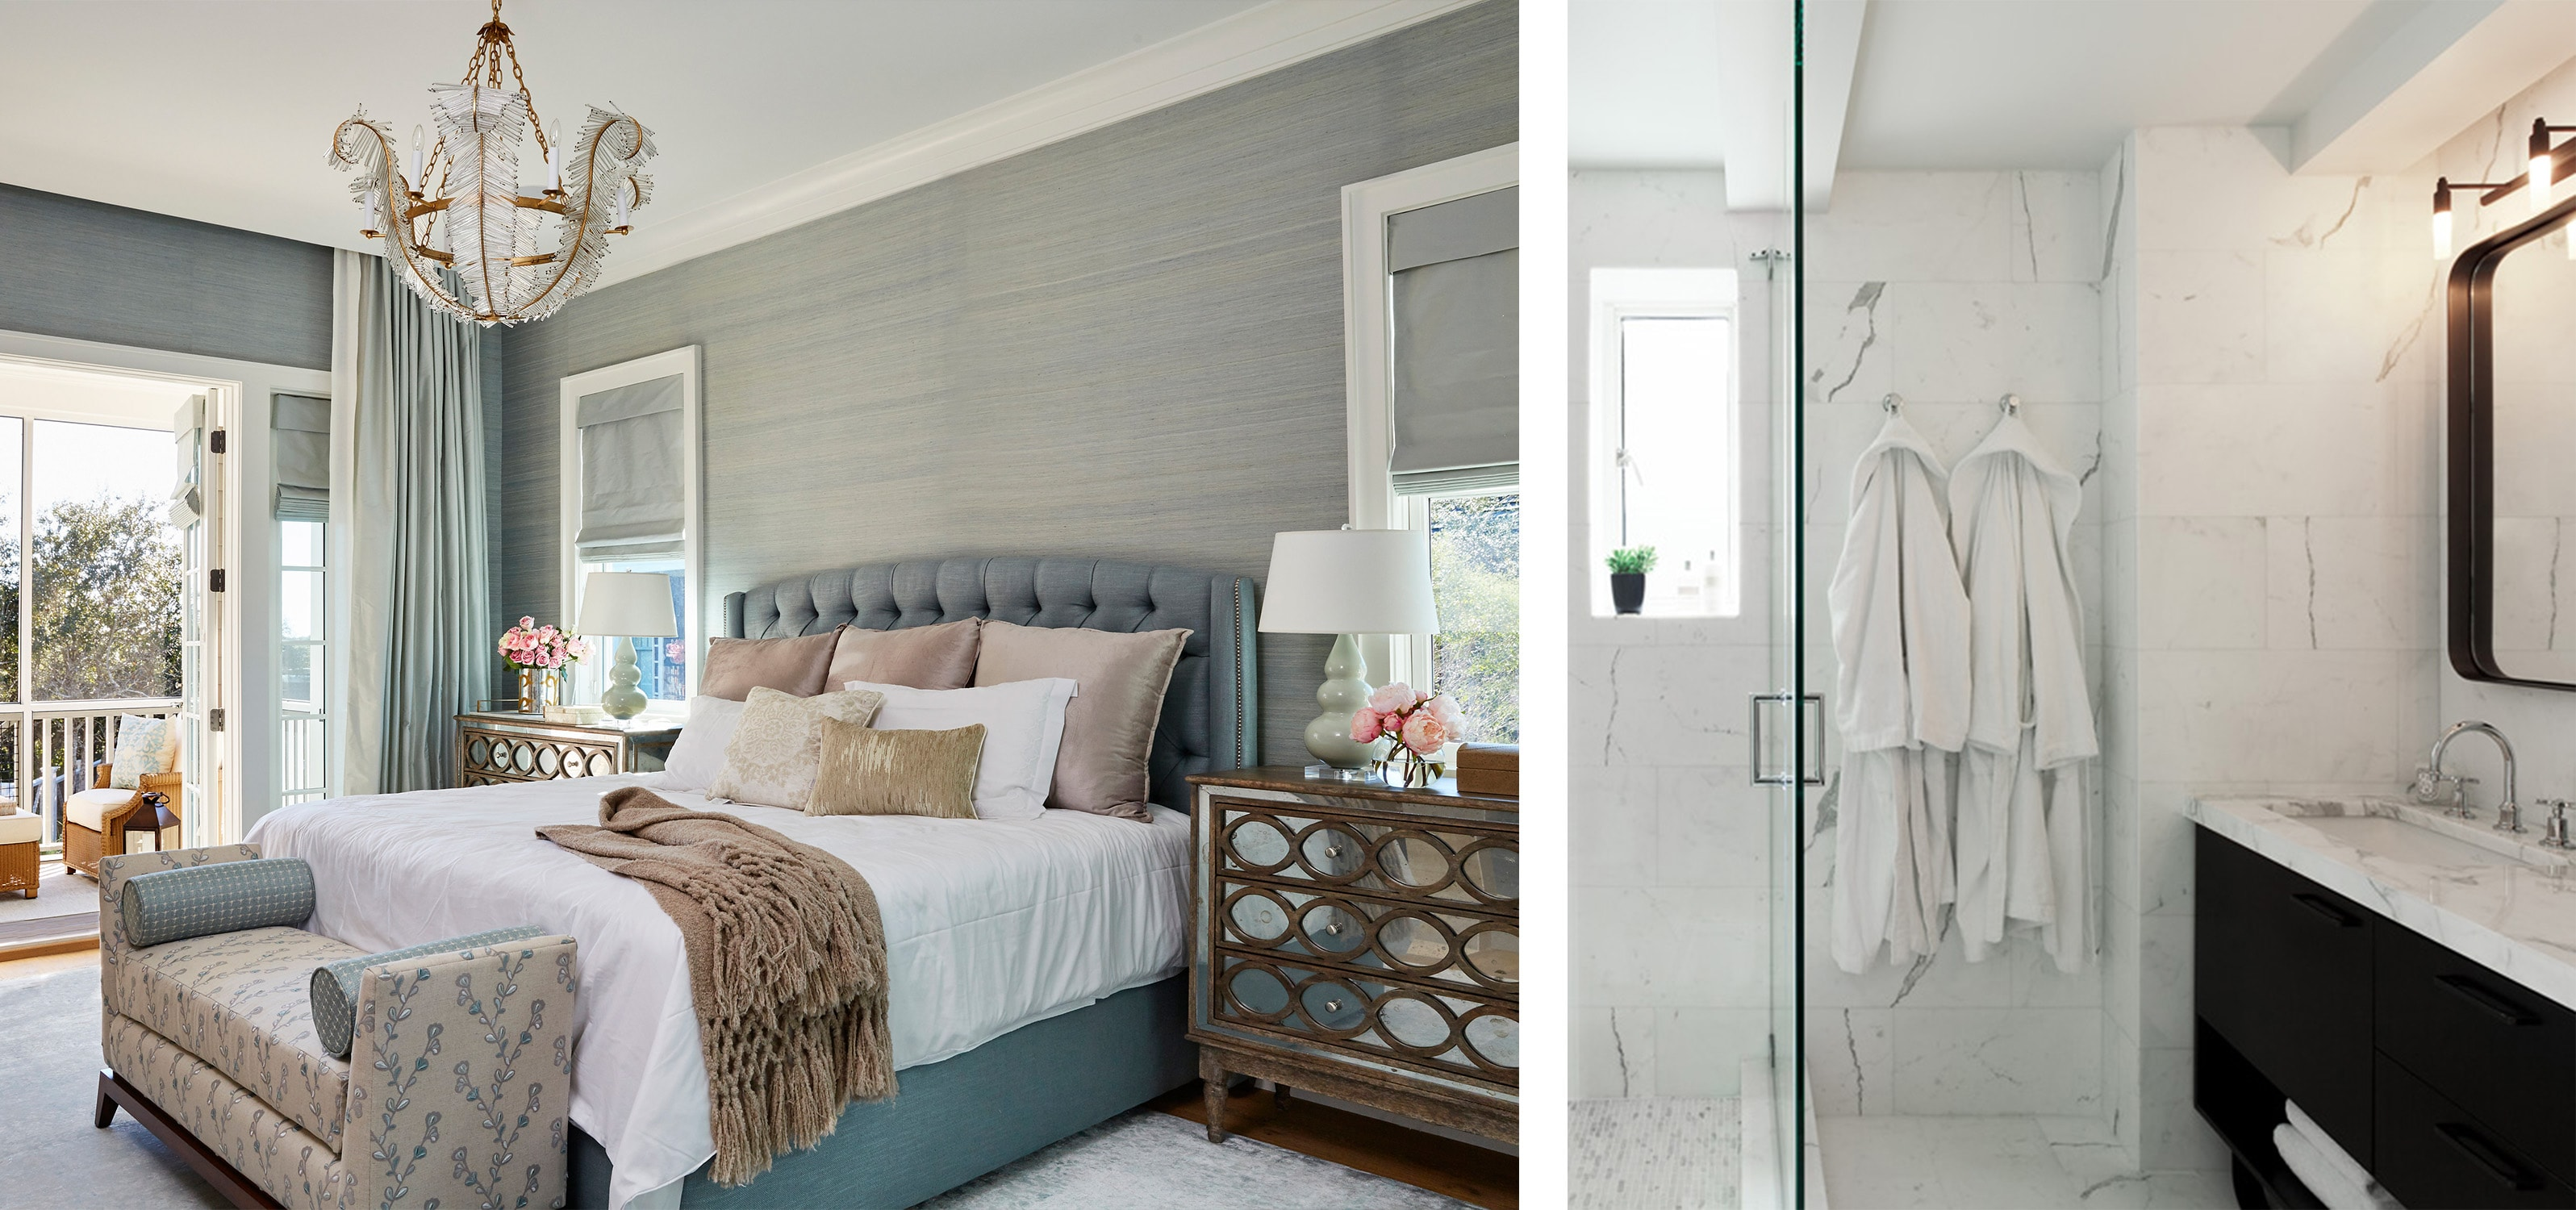 design tip #3: choose white linens for the bedroom and bathroom, and here's why. - darci hether new york